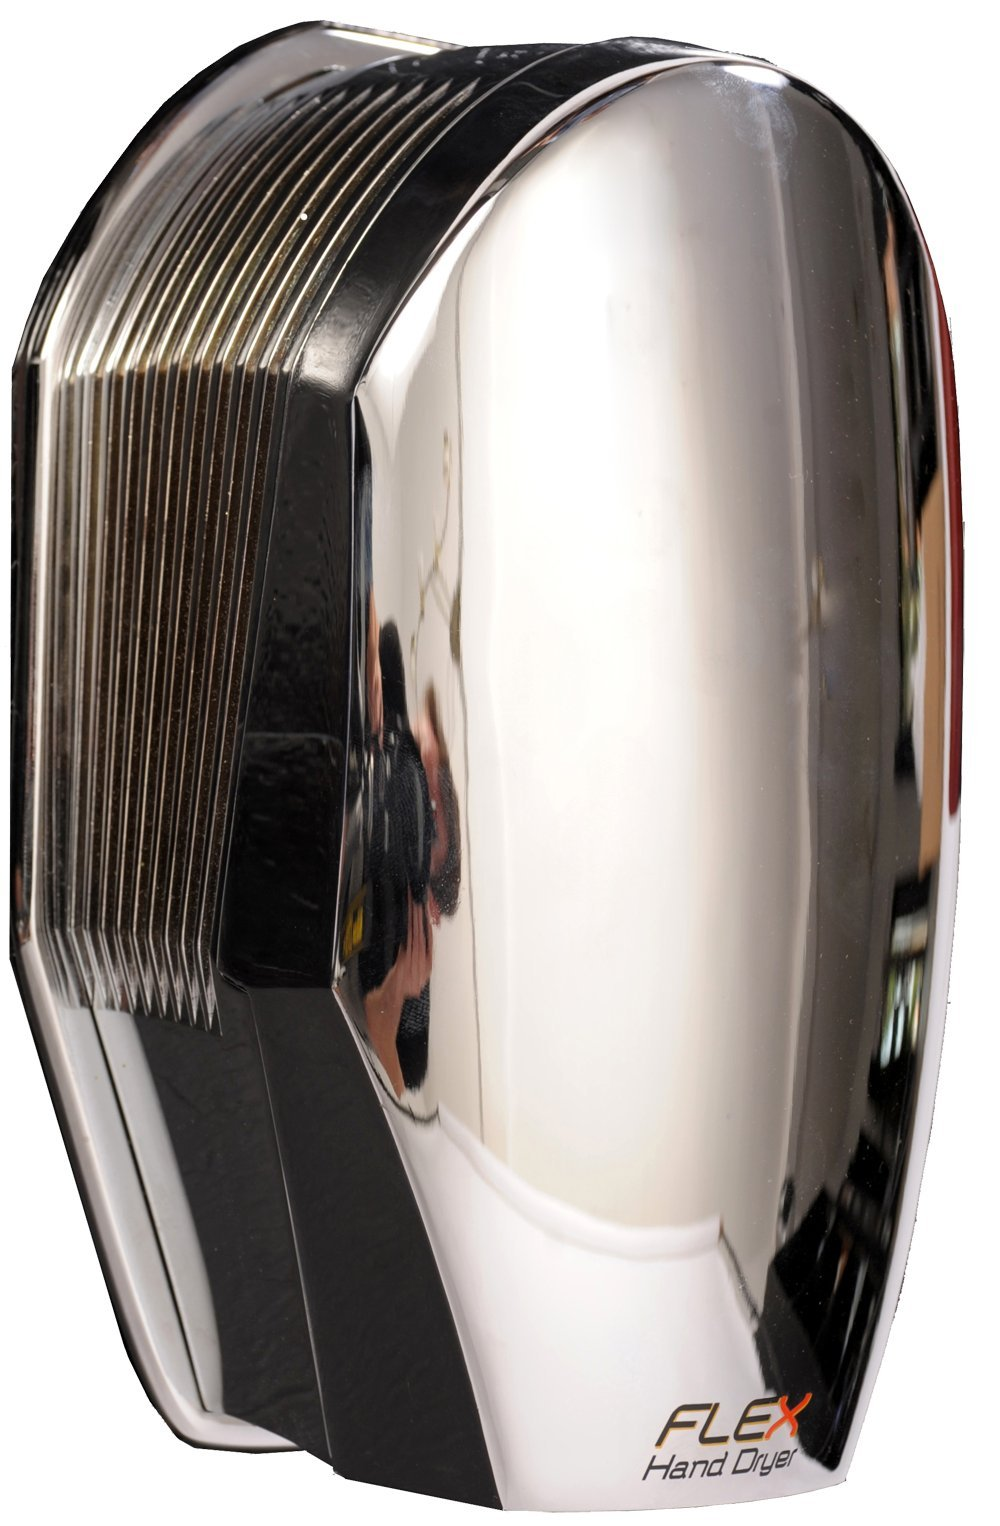 Flex Hand Dryer - Dries Hands in Less Than 10s. 10 Year Warranty. Heavy Duty Metal Casted Enclosure. Consumes only 800W. Modular Design facilitates Maintenance and Upgrades. Made in Canada. Other col